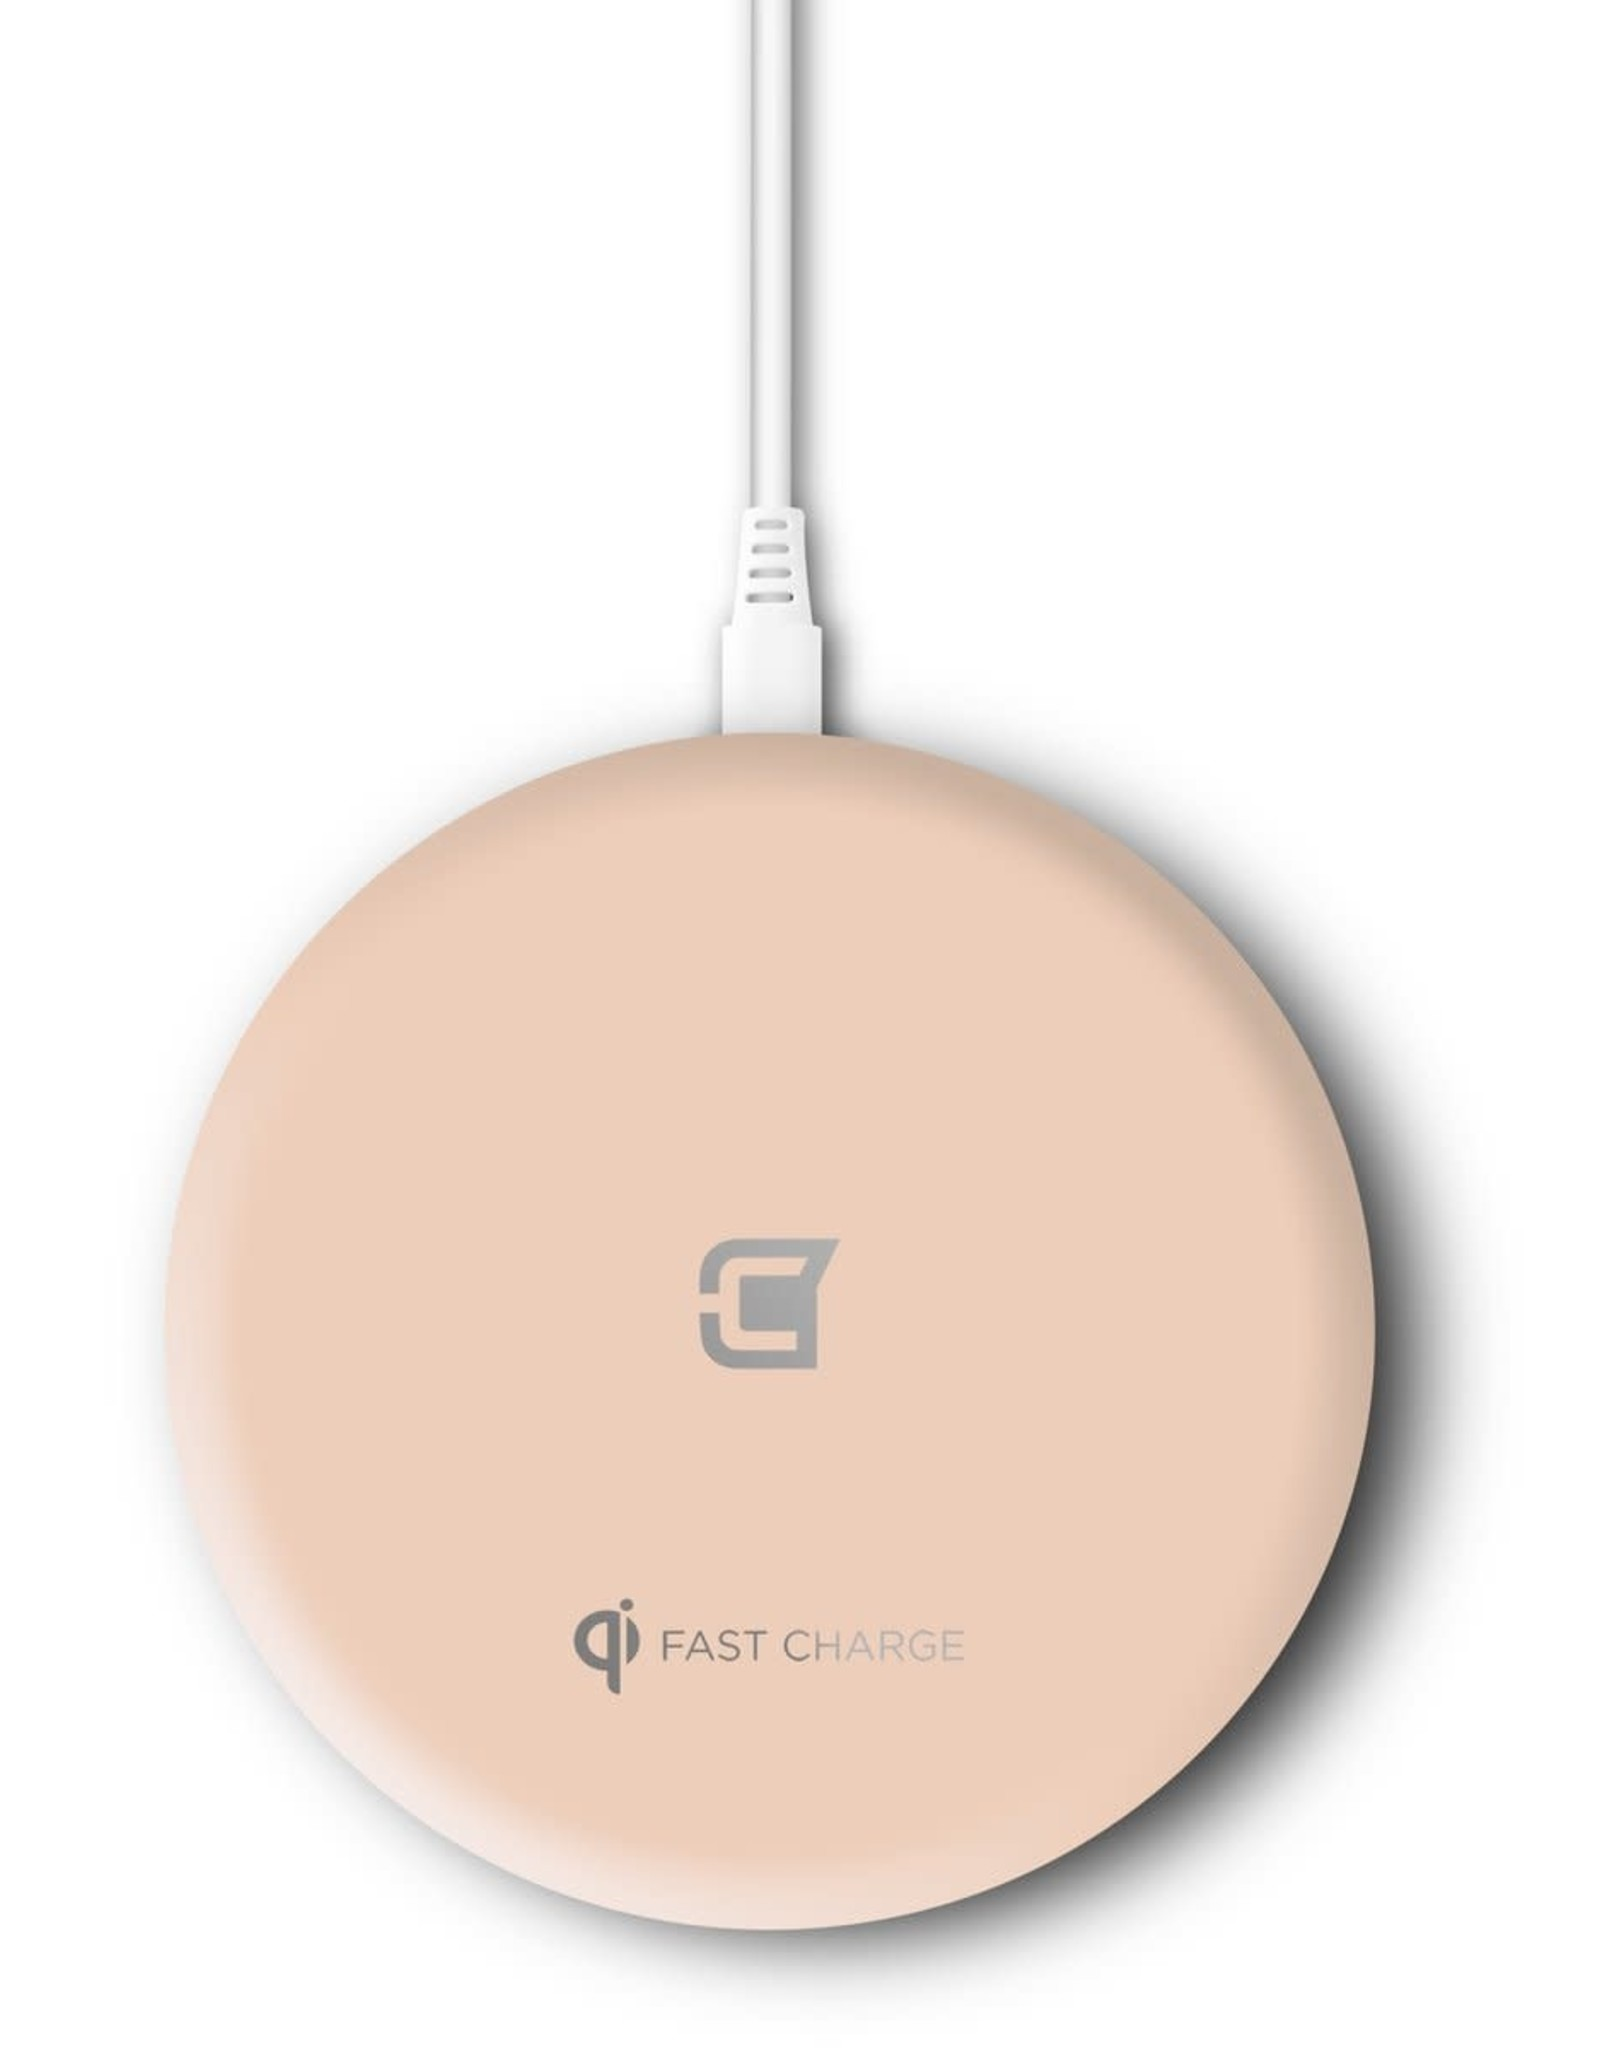 Caseco Caseco Nitro II 10W Fast Wireless Charger For Android & IOS Rose Gold C0710-05